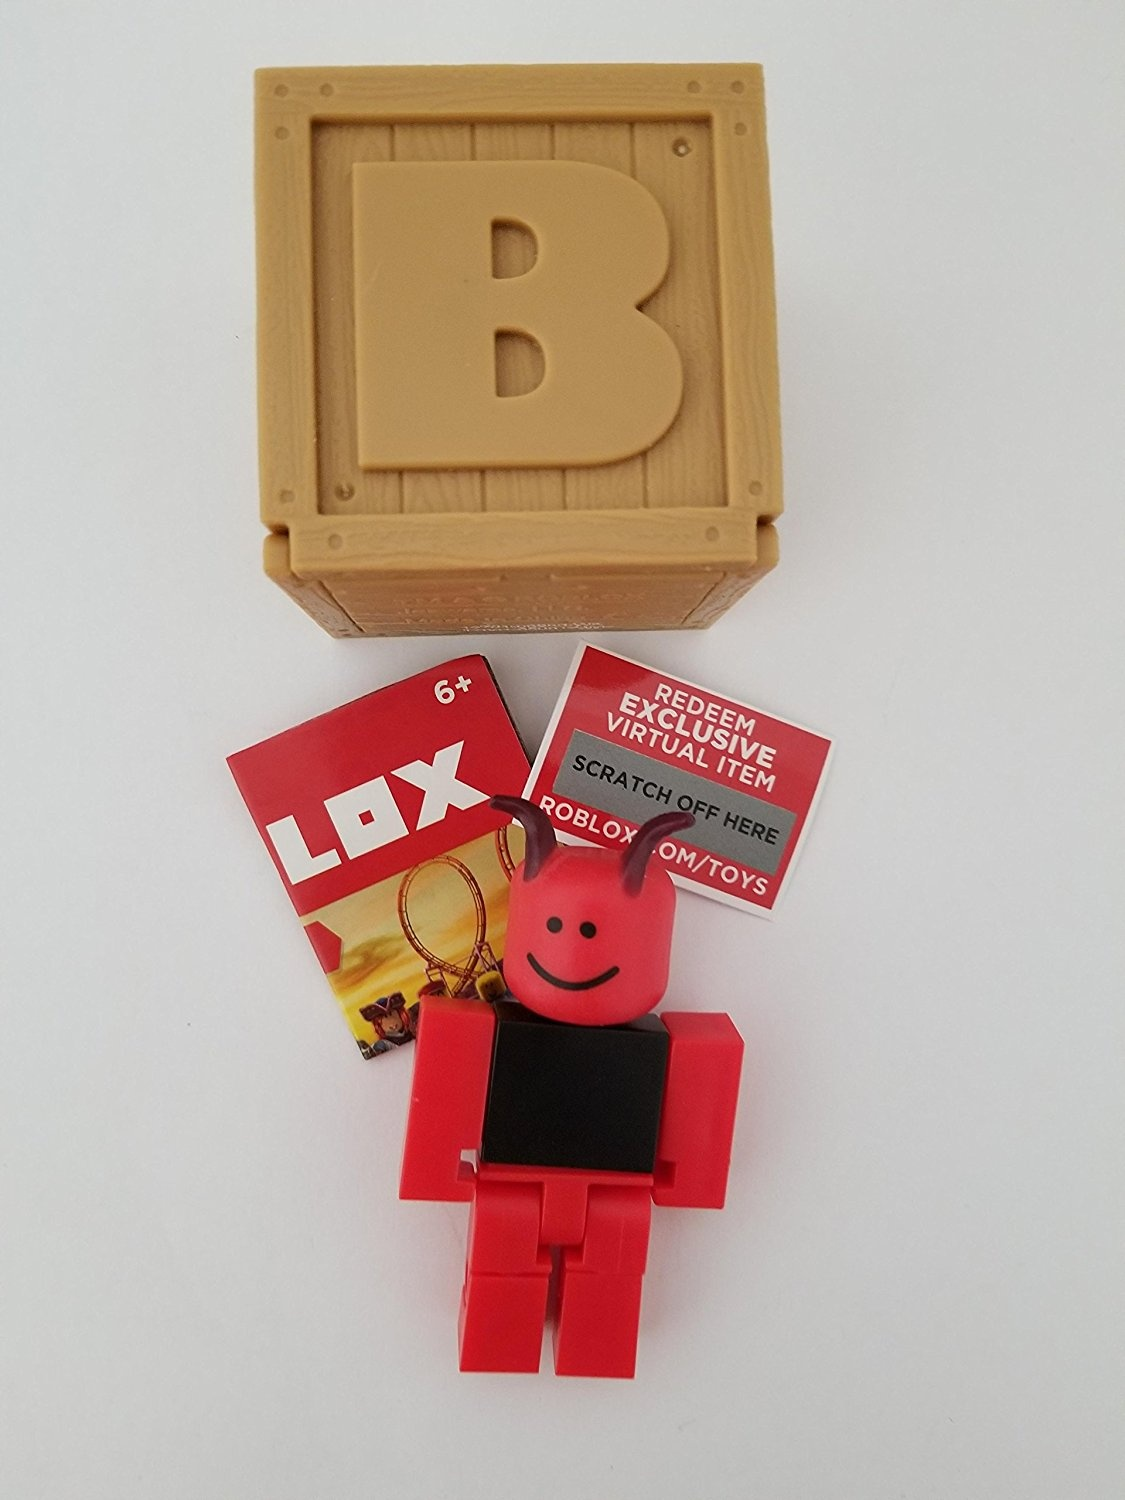 Virtual Item Code Roblox Roblox Series 2 Maelstronomer Action Figure Mystery Box Virtual Item Code 6 4cm By Roblox Shop Online For Toys In Australia